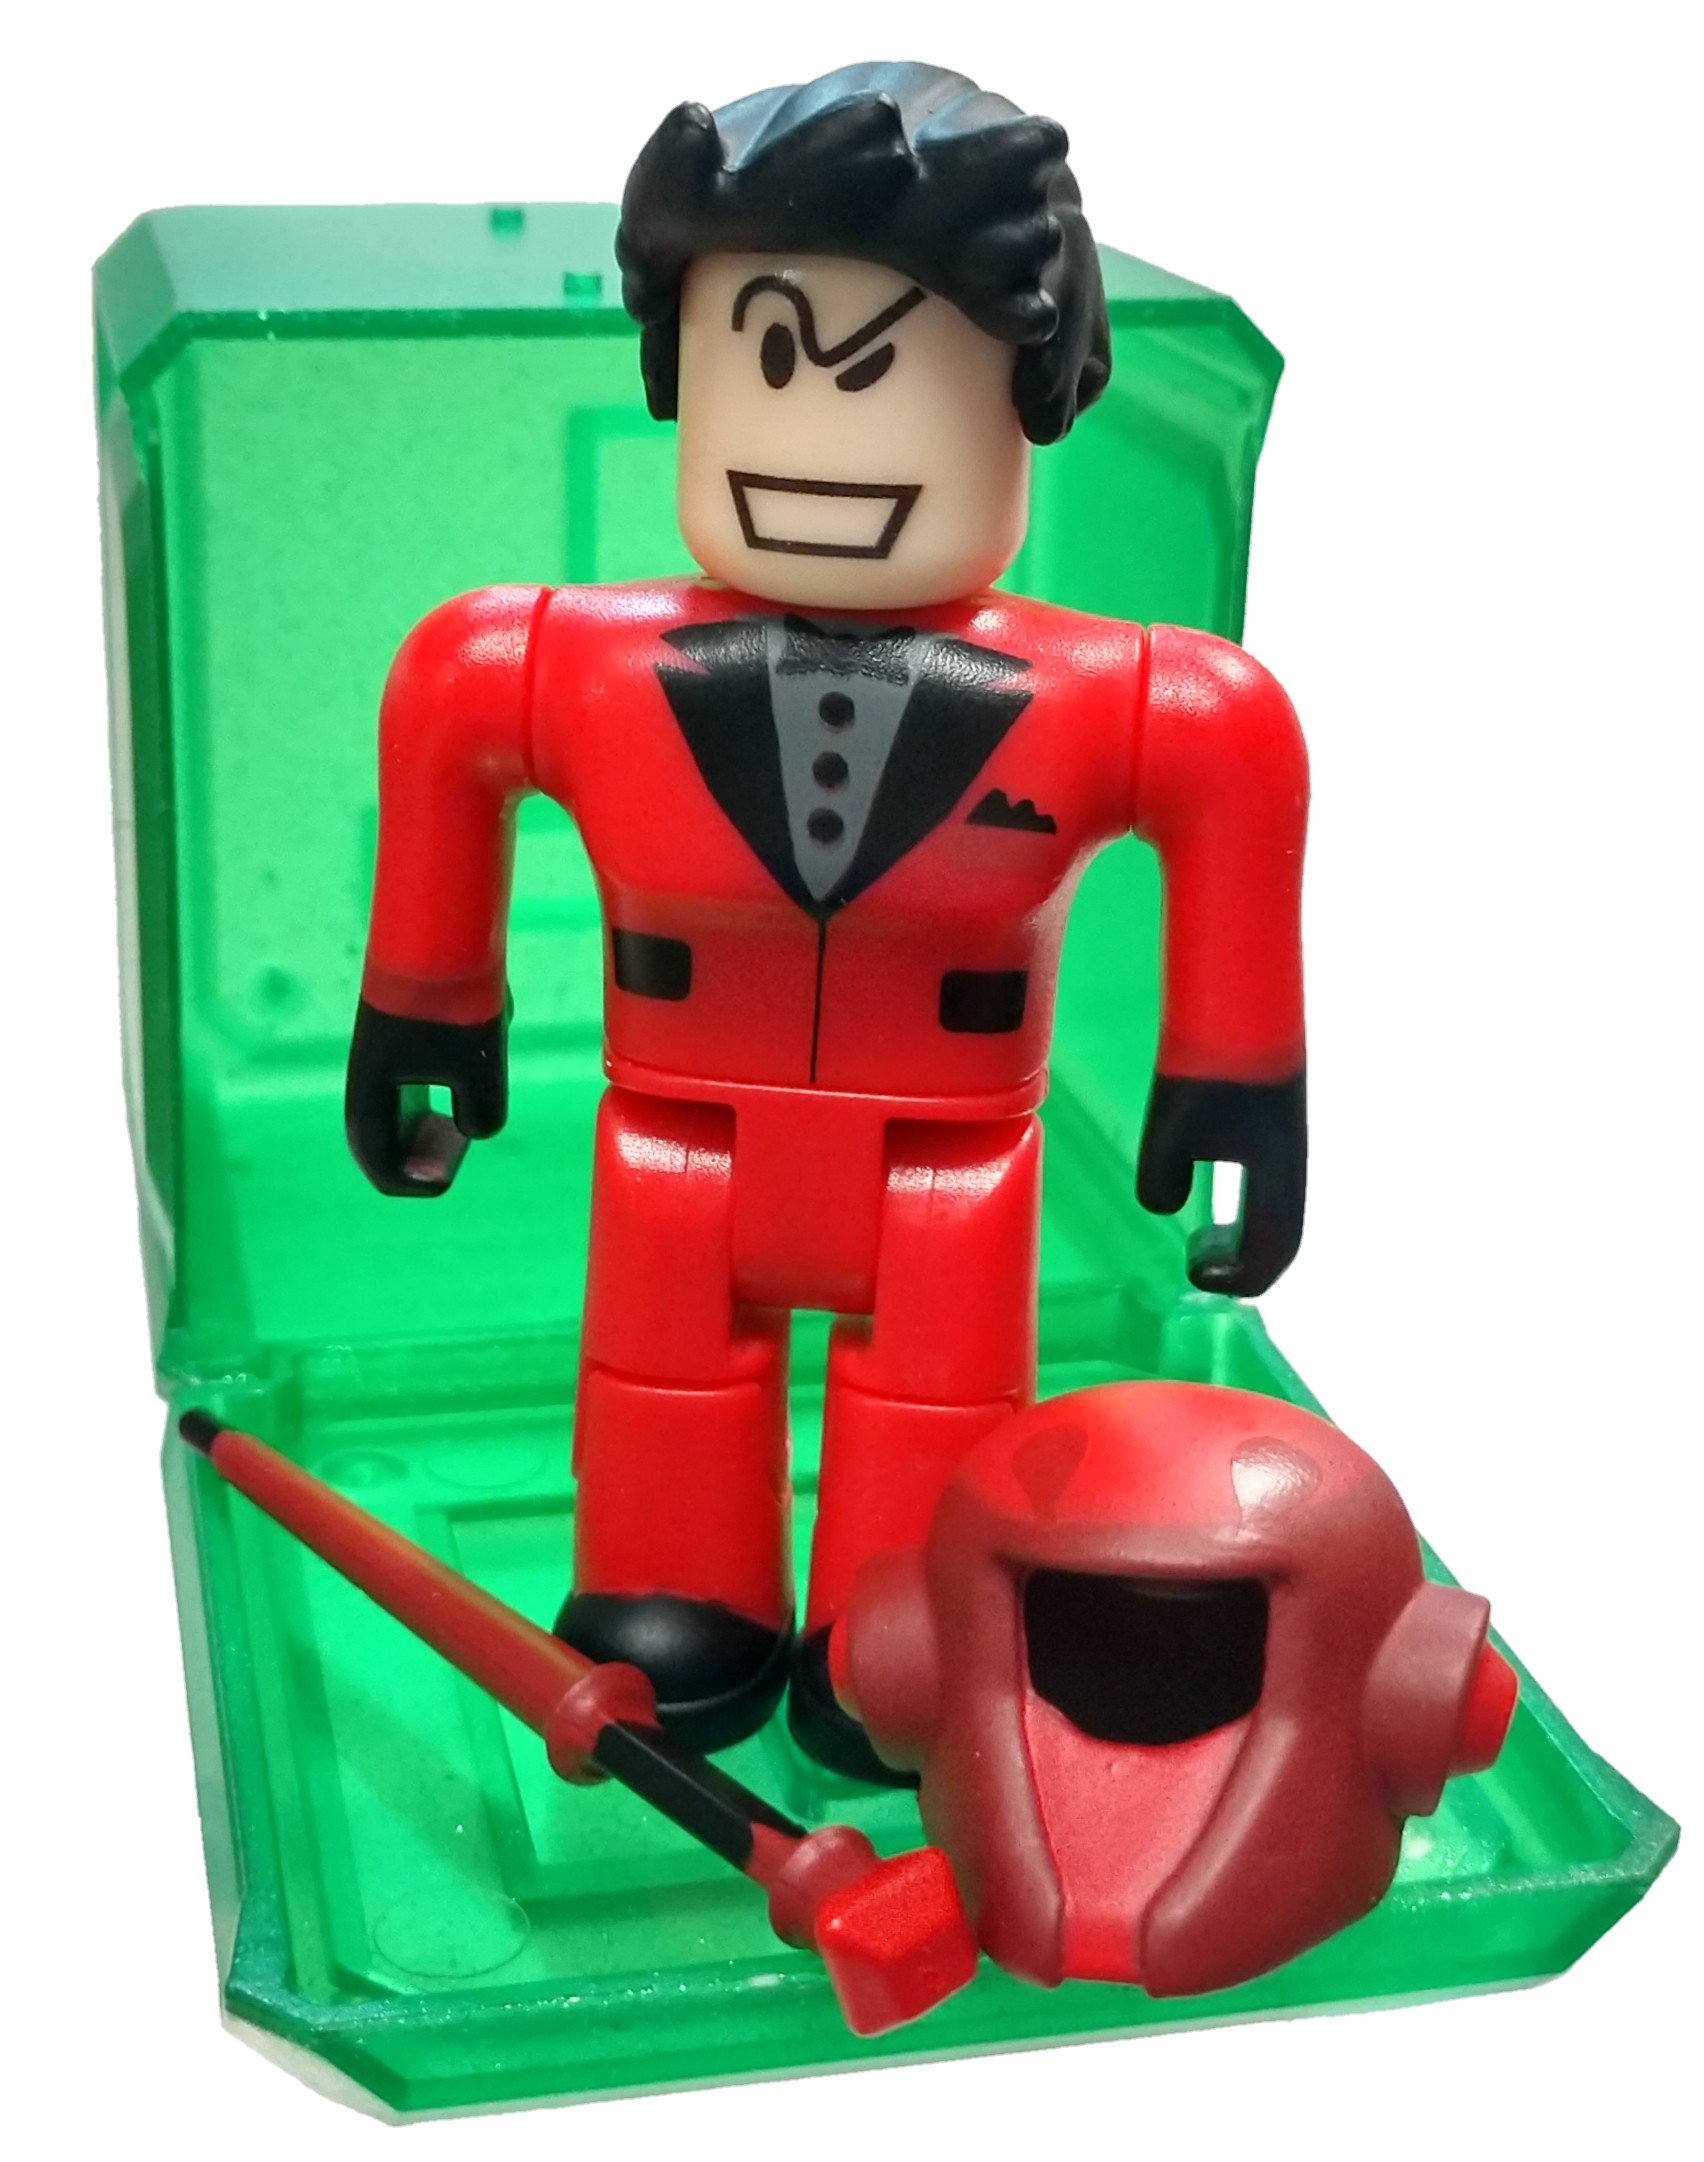 Red Suit Roblox Roblox Celebrity Collection Series 4 Rockin Red Suit Mini Figure With Green Cube And Online Code No Packaging Walmart Com Walmart Com